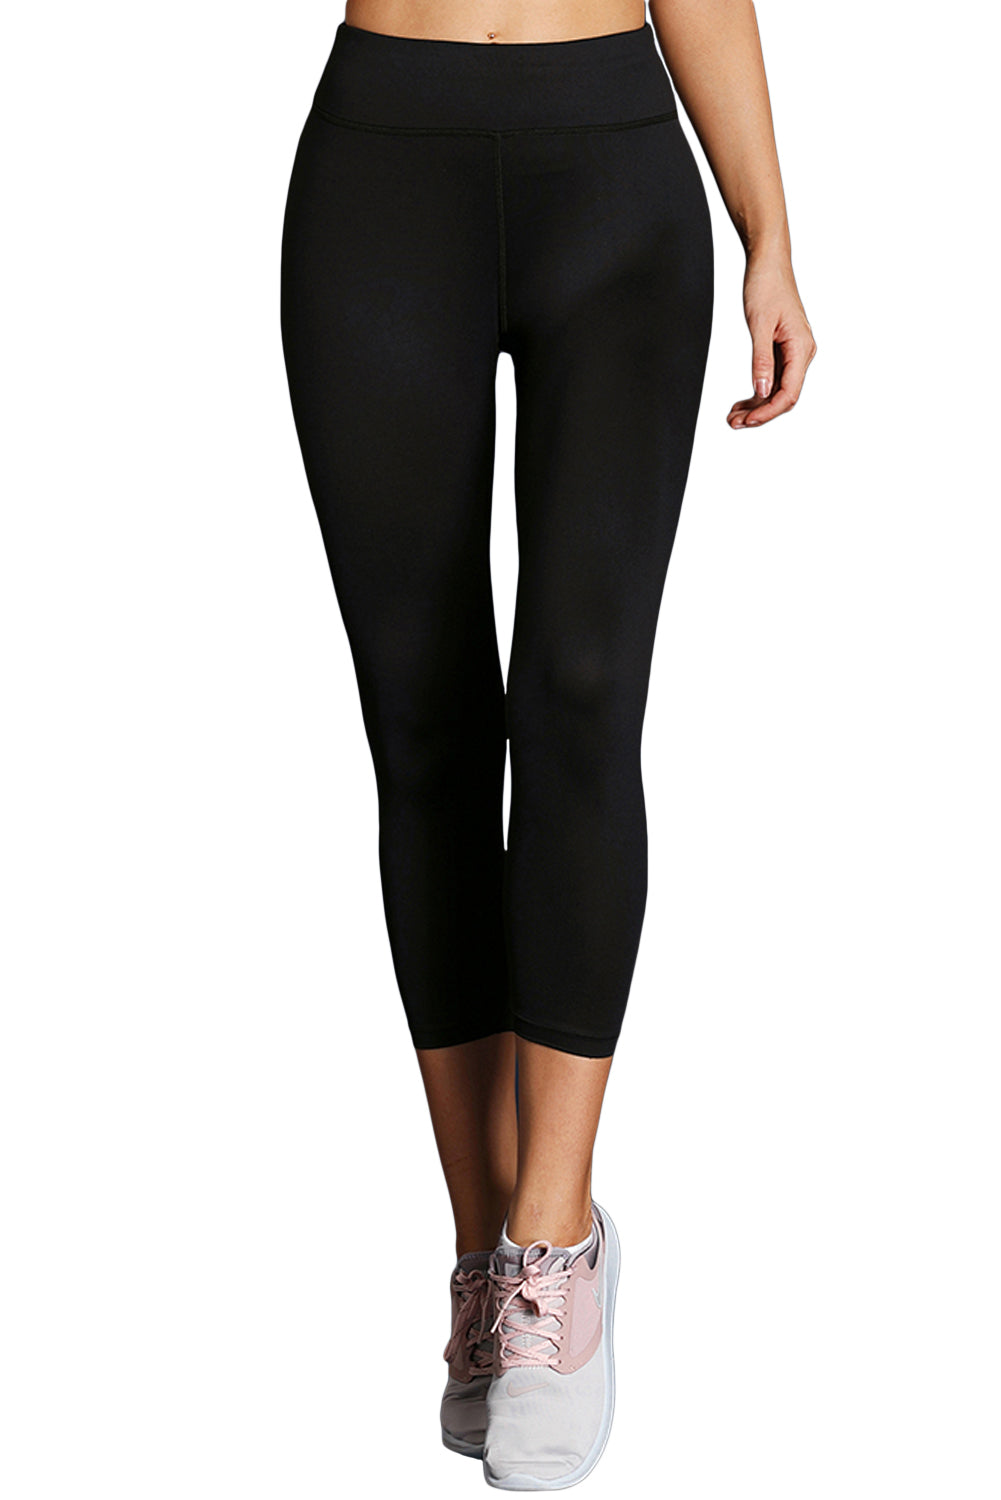 Black High Waist Full Length Leggings